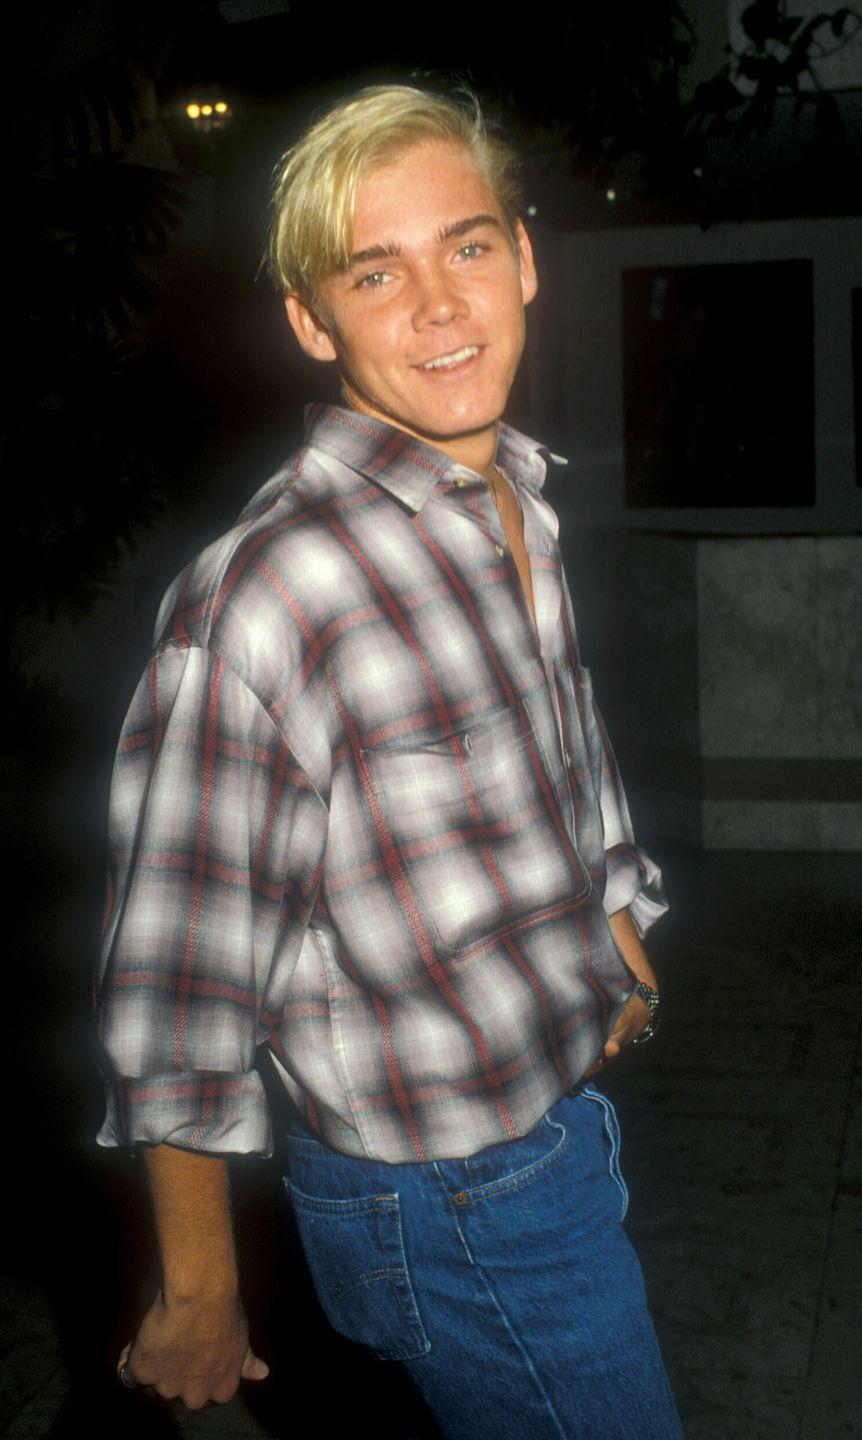 <p>In addition to helping make Jason Bateman (mentioned earlier in this gallery) into a big name, sitcom <em>Silver Spoons</em> was a break for another young actor: Ricky Schroeder, who starred as Ricky Stratton.</p>